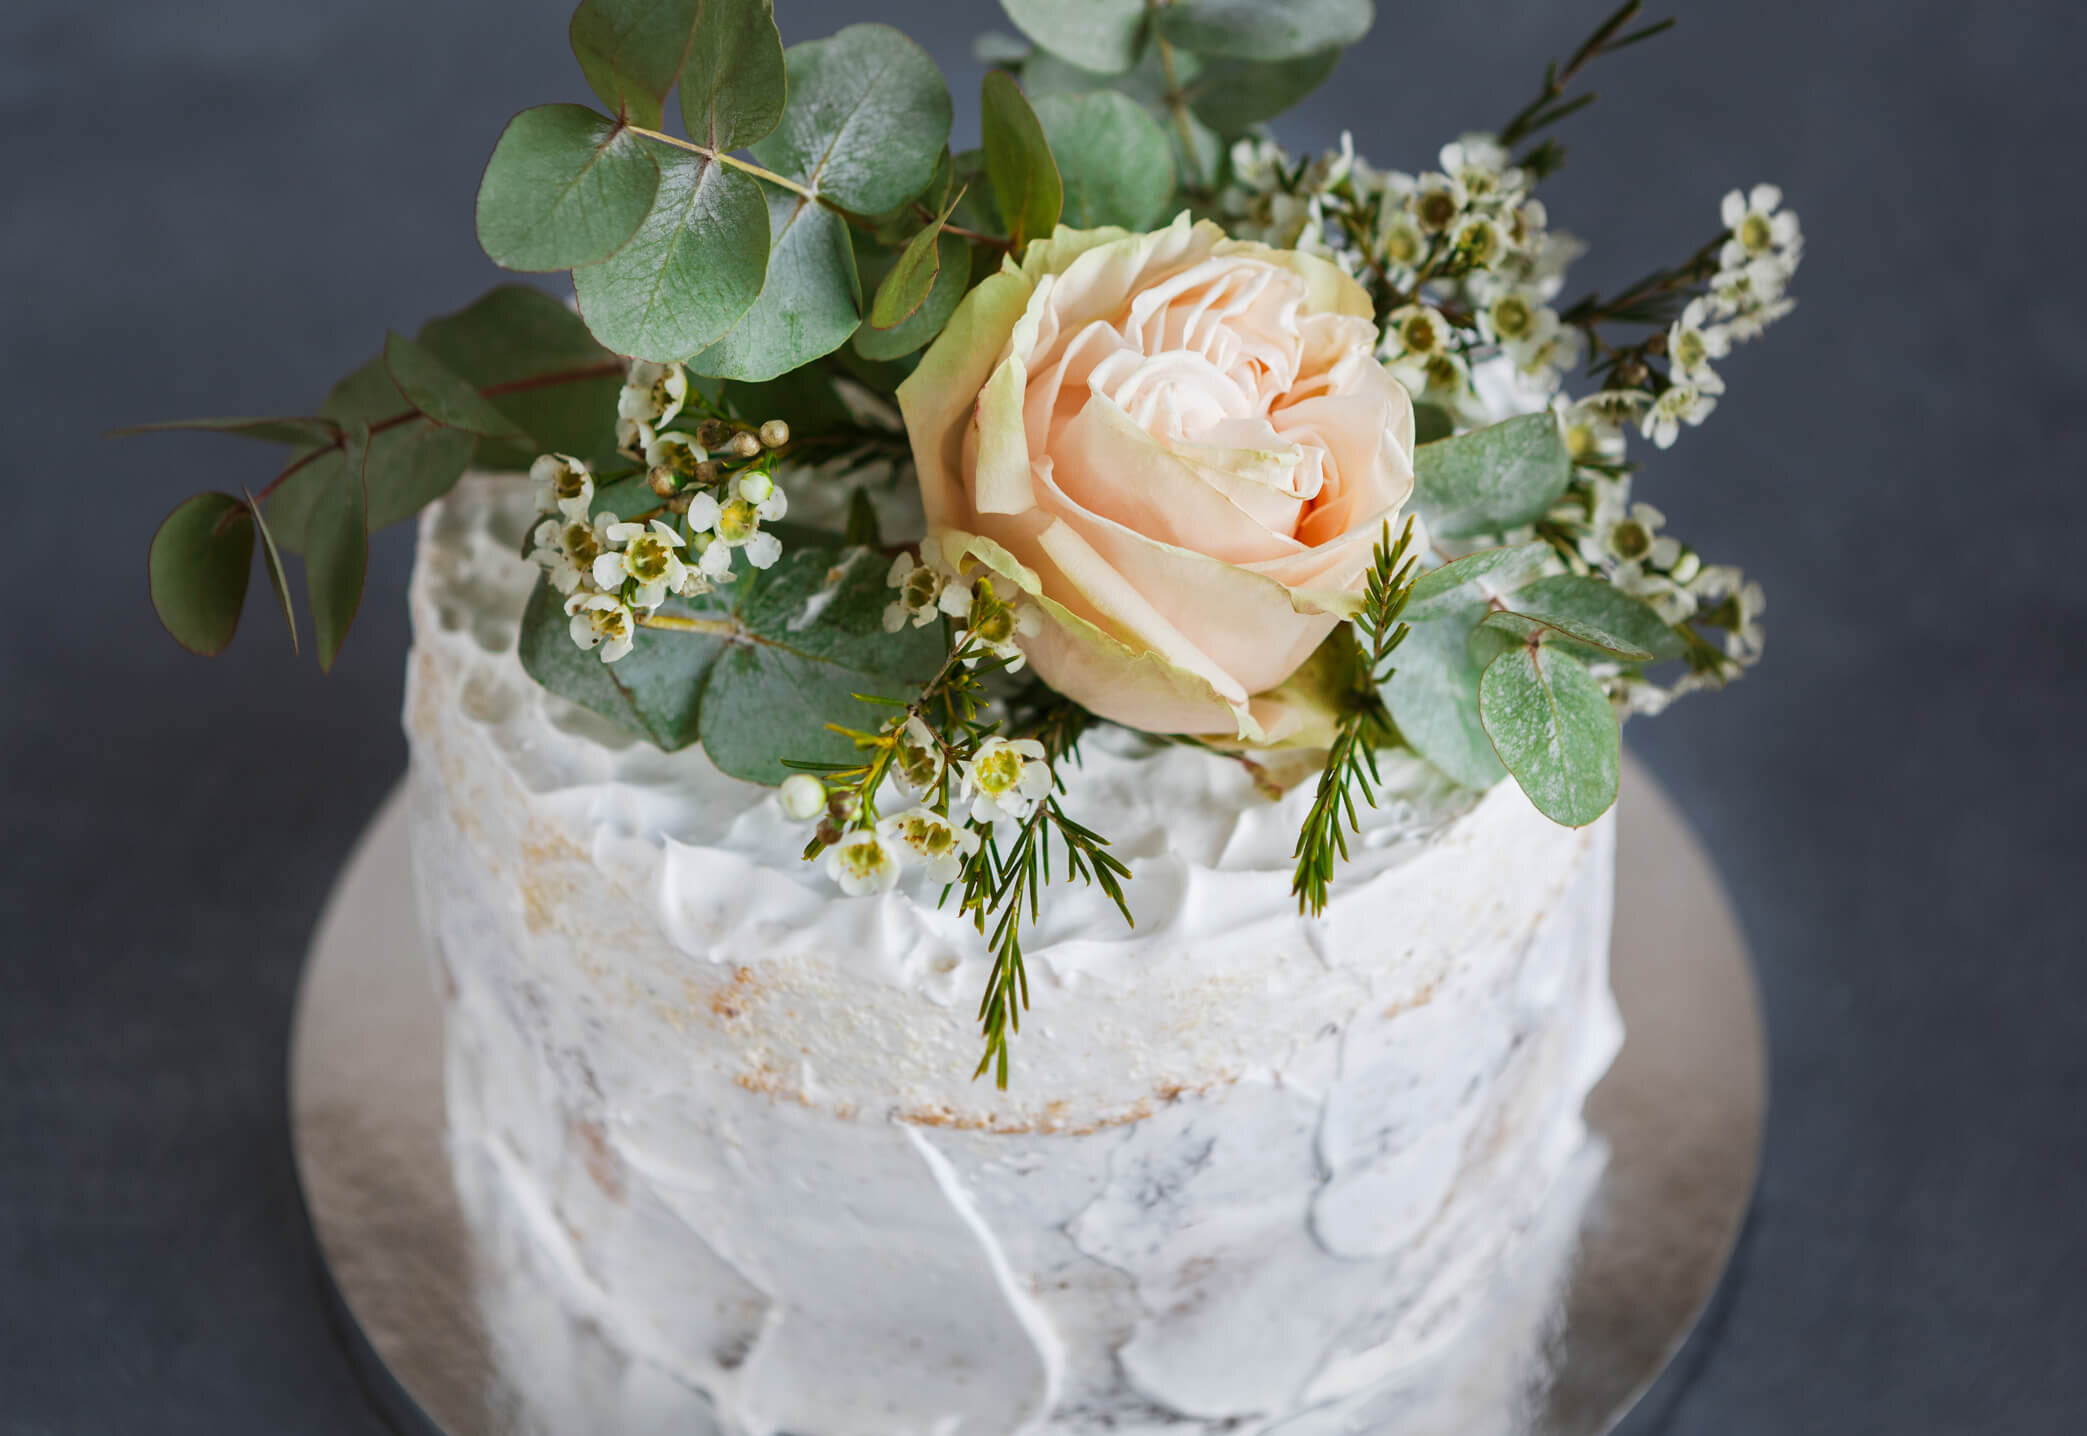 Wedding cake with white frosting and pink flower.jpg